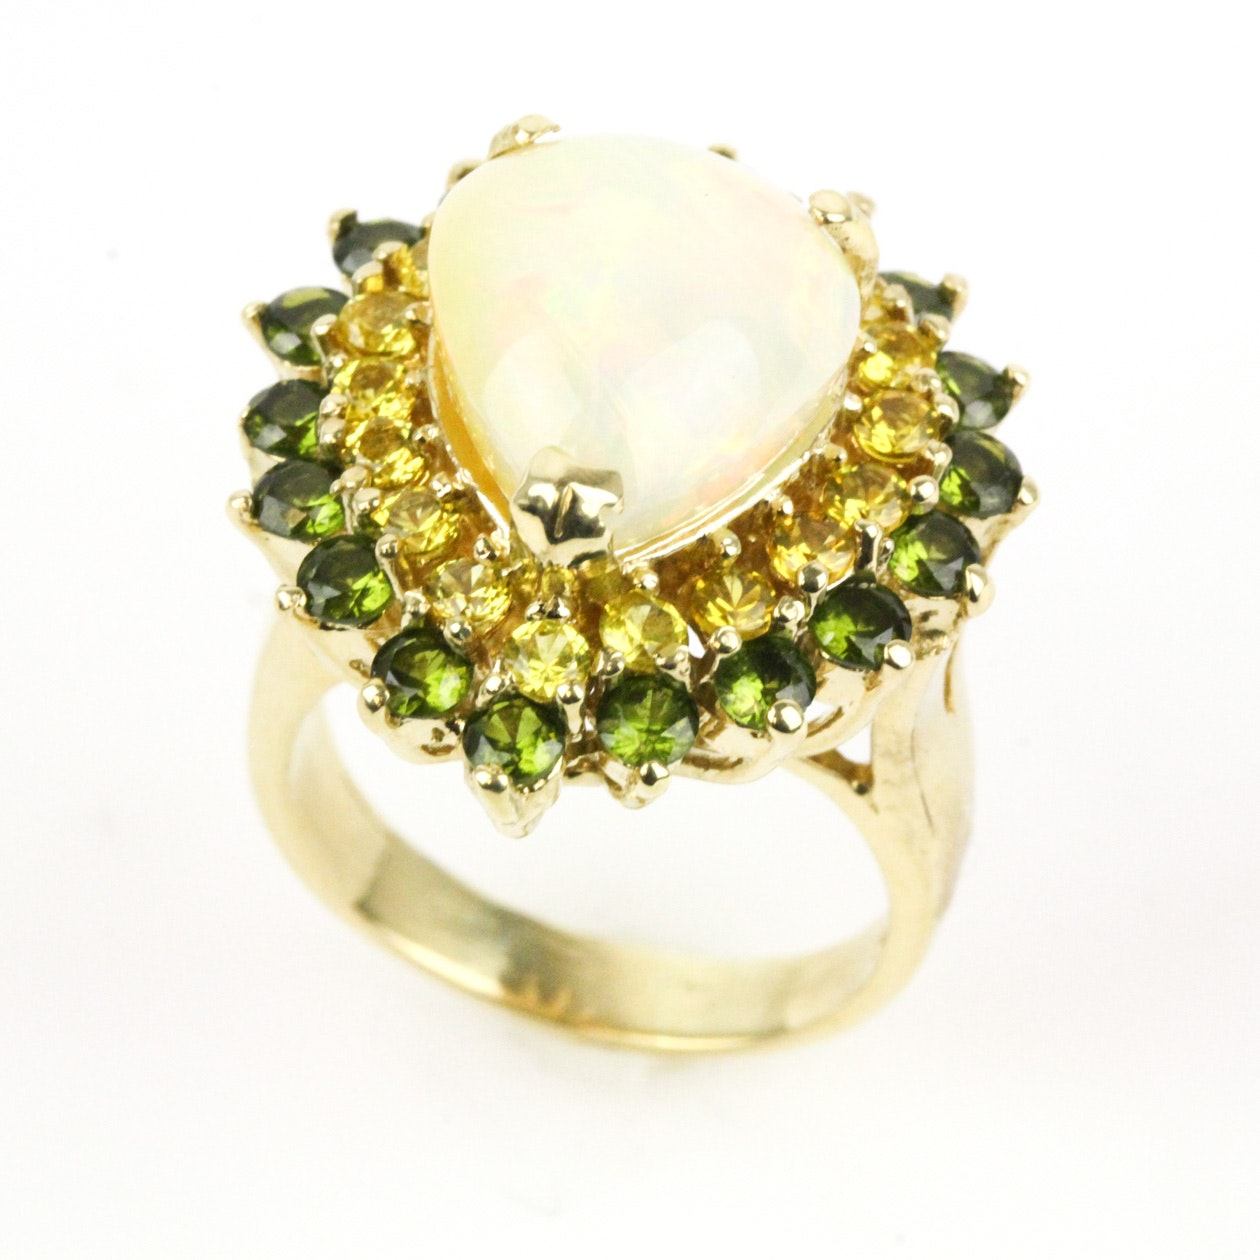 14K Yellow Gold, Opal, Yellow Sapphire, and Green Spinel Statement Ring